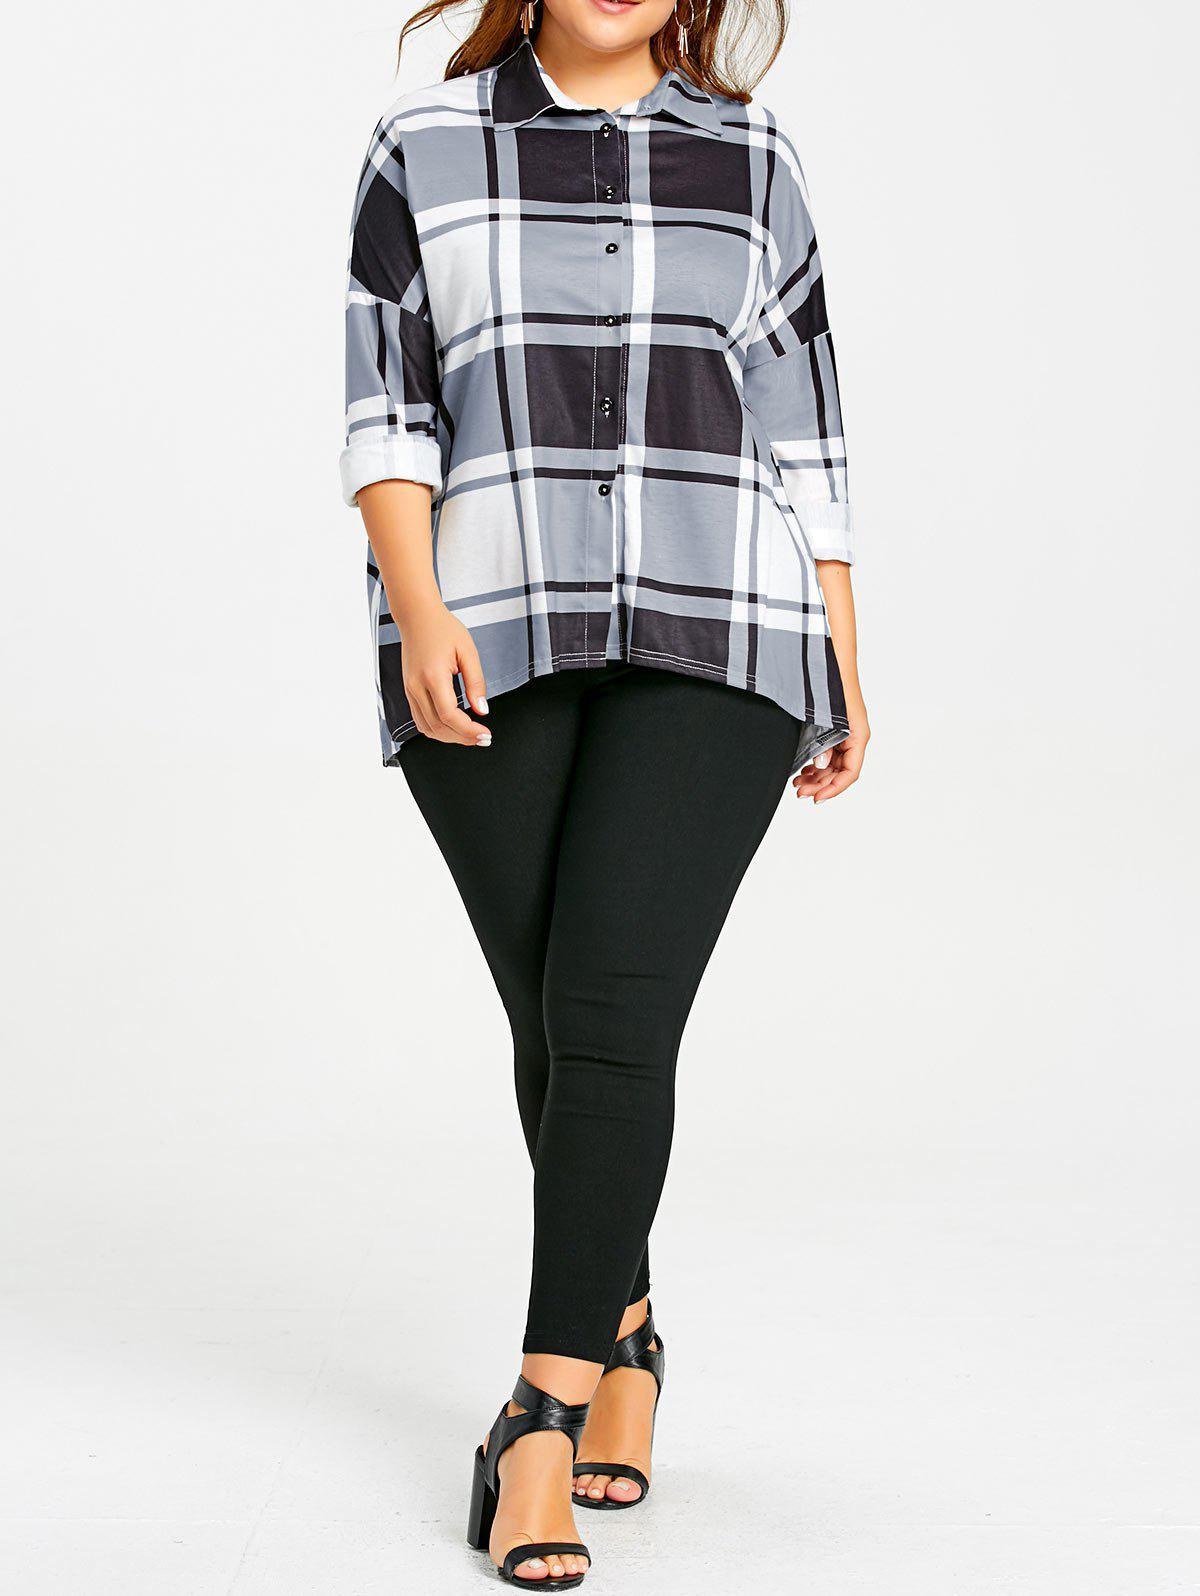 Plus Size High Low Plaid Blouse alfani new black women s size small s mesh back high low ribbed blouse $59 259